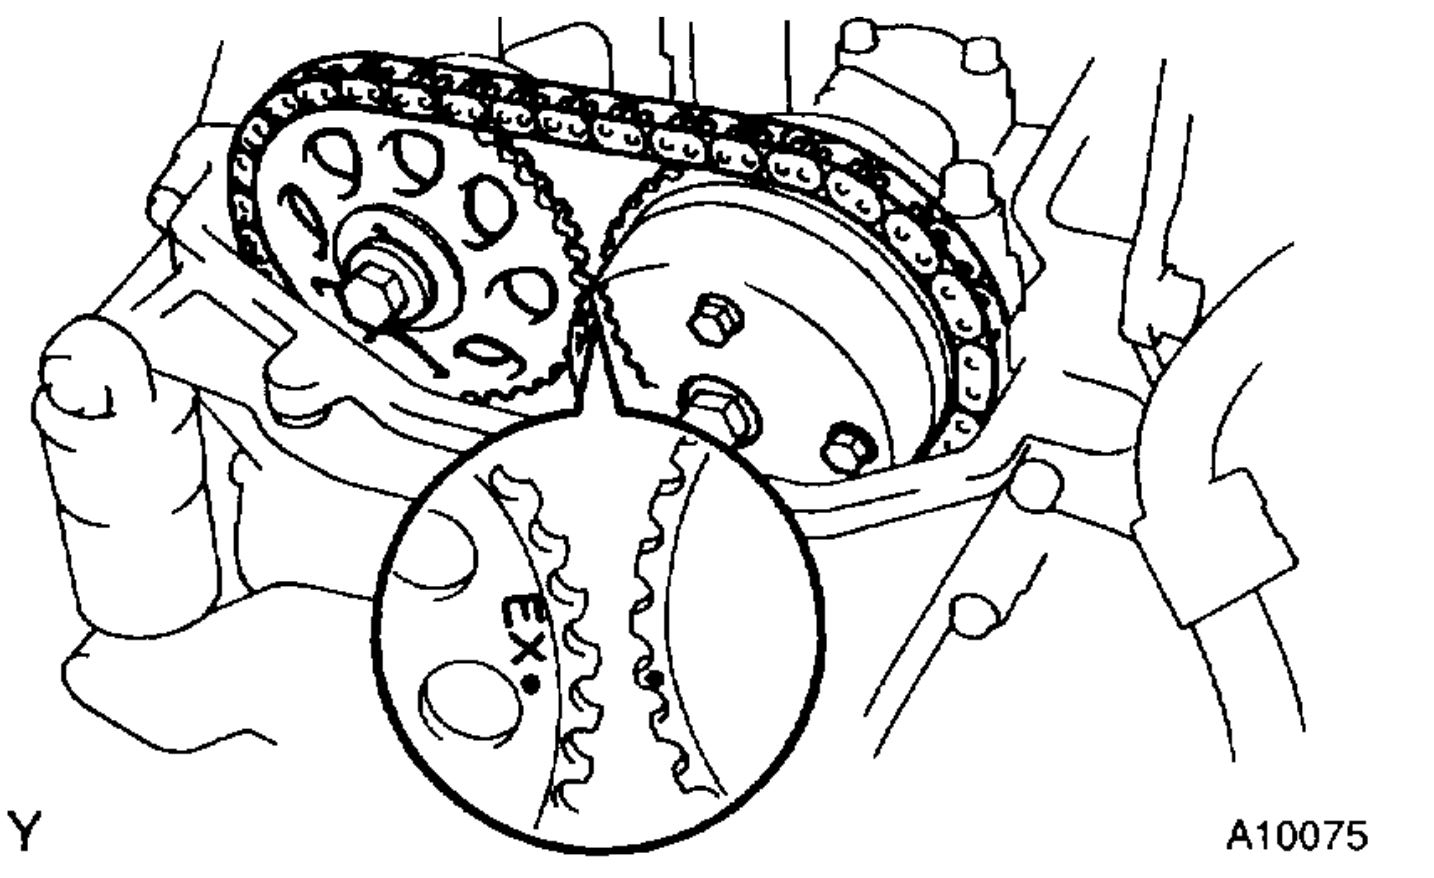 Timing Chain Diagram How To Replace A Timing Chain Timing Chain